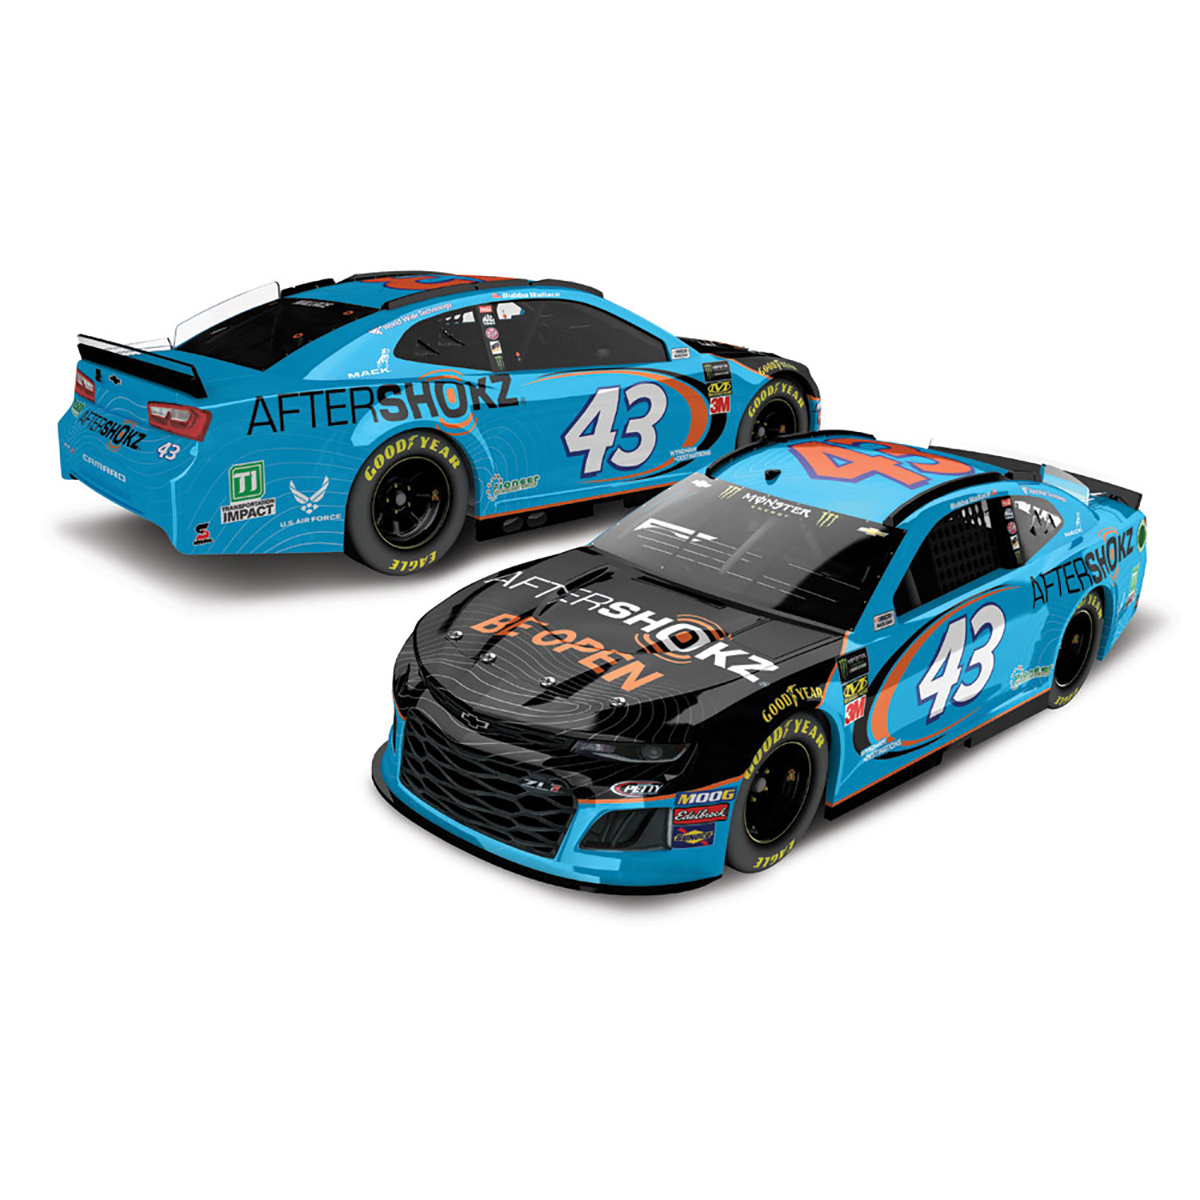 Bubba Wallace #43 2019 NASCAR Aftershokz 1:64 - Die Cast